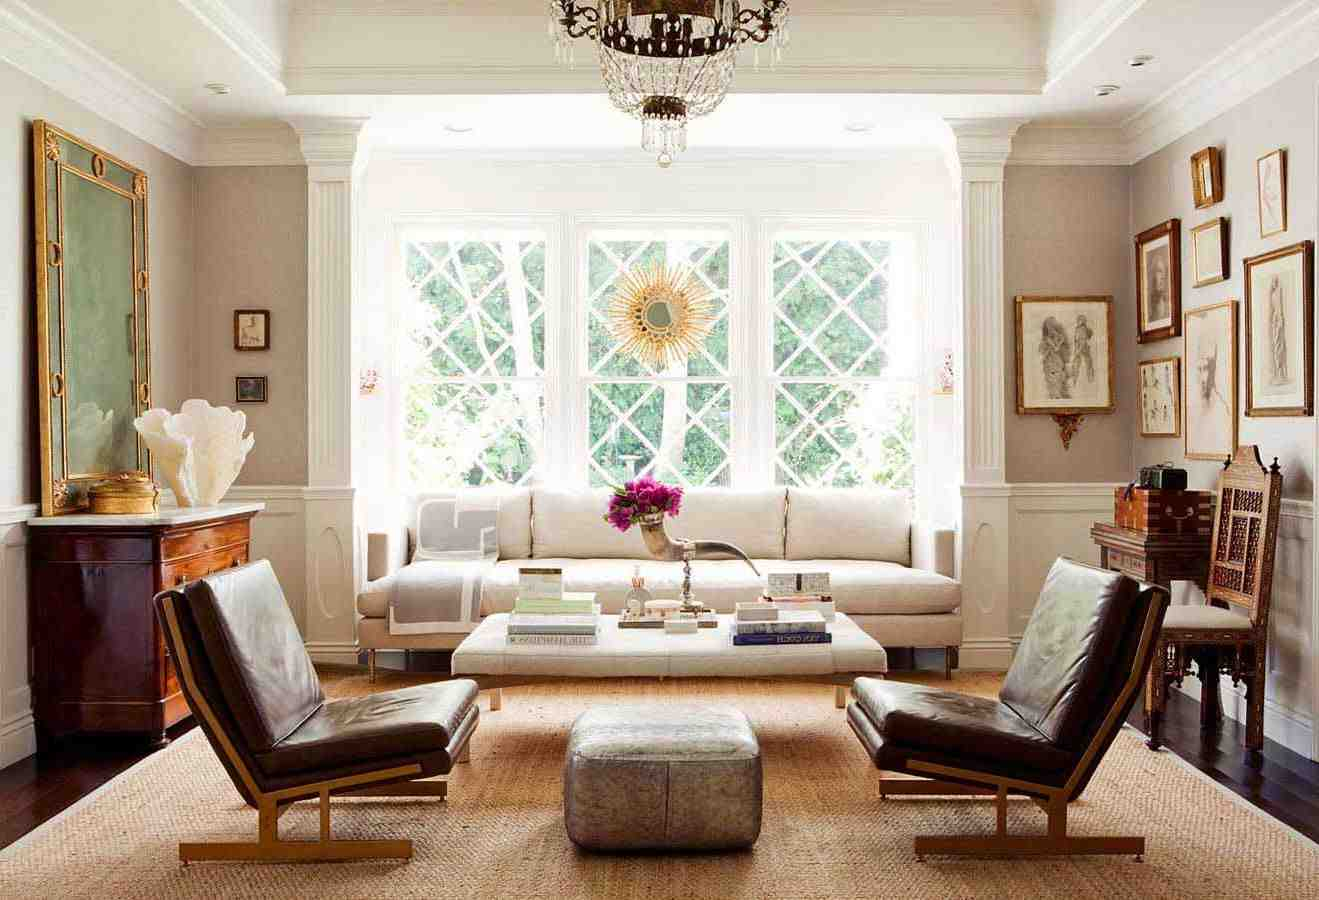 Feng shui living room layout gallery apps directories - Decoration feng shui appartement ...